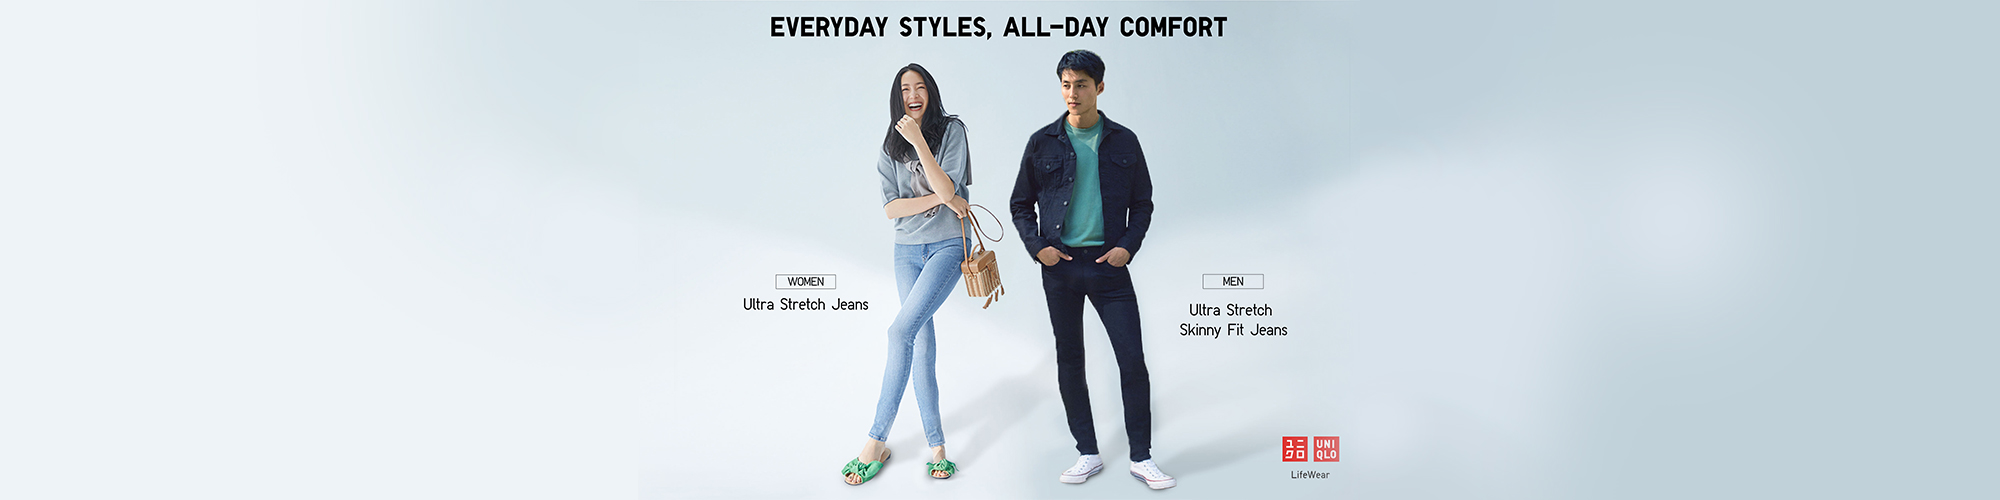 km_website_slider_uniqlo_270219